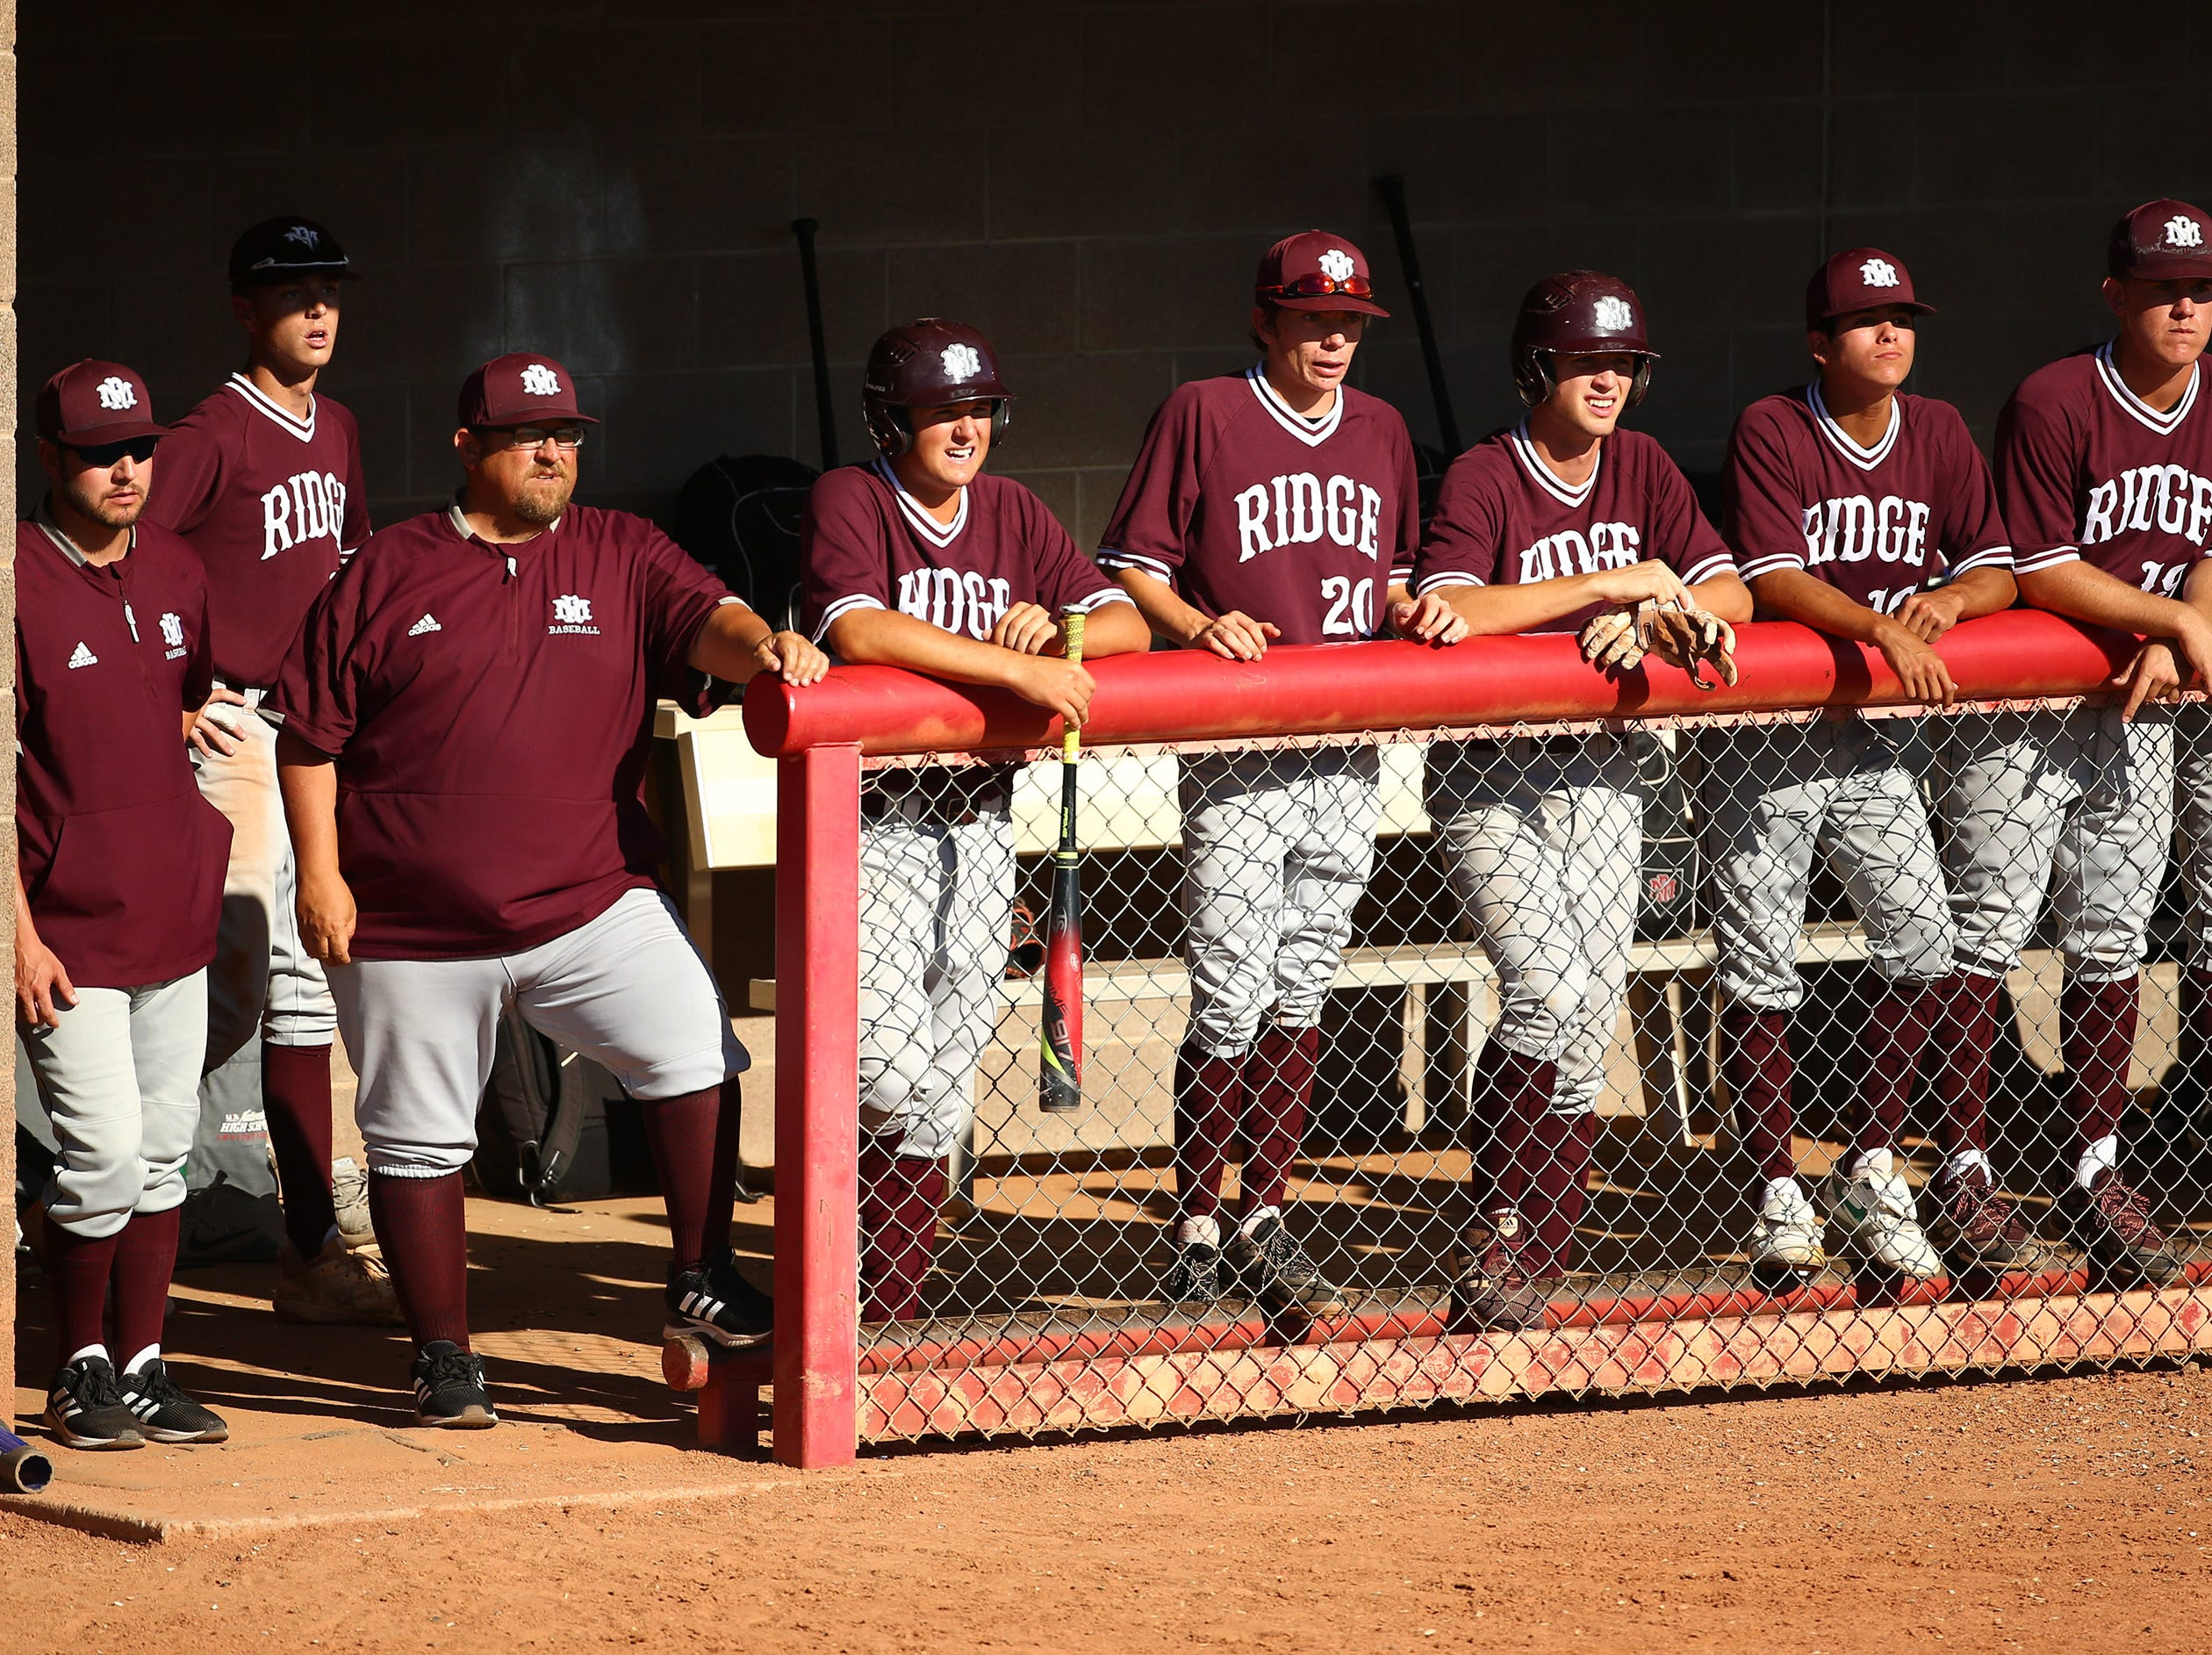 Mountain Ridge coach Artie Cox (third to the left) against Brophy Prep in the third inning on Apr. 24, 2019 in Phoenix, Ariz